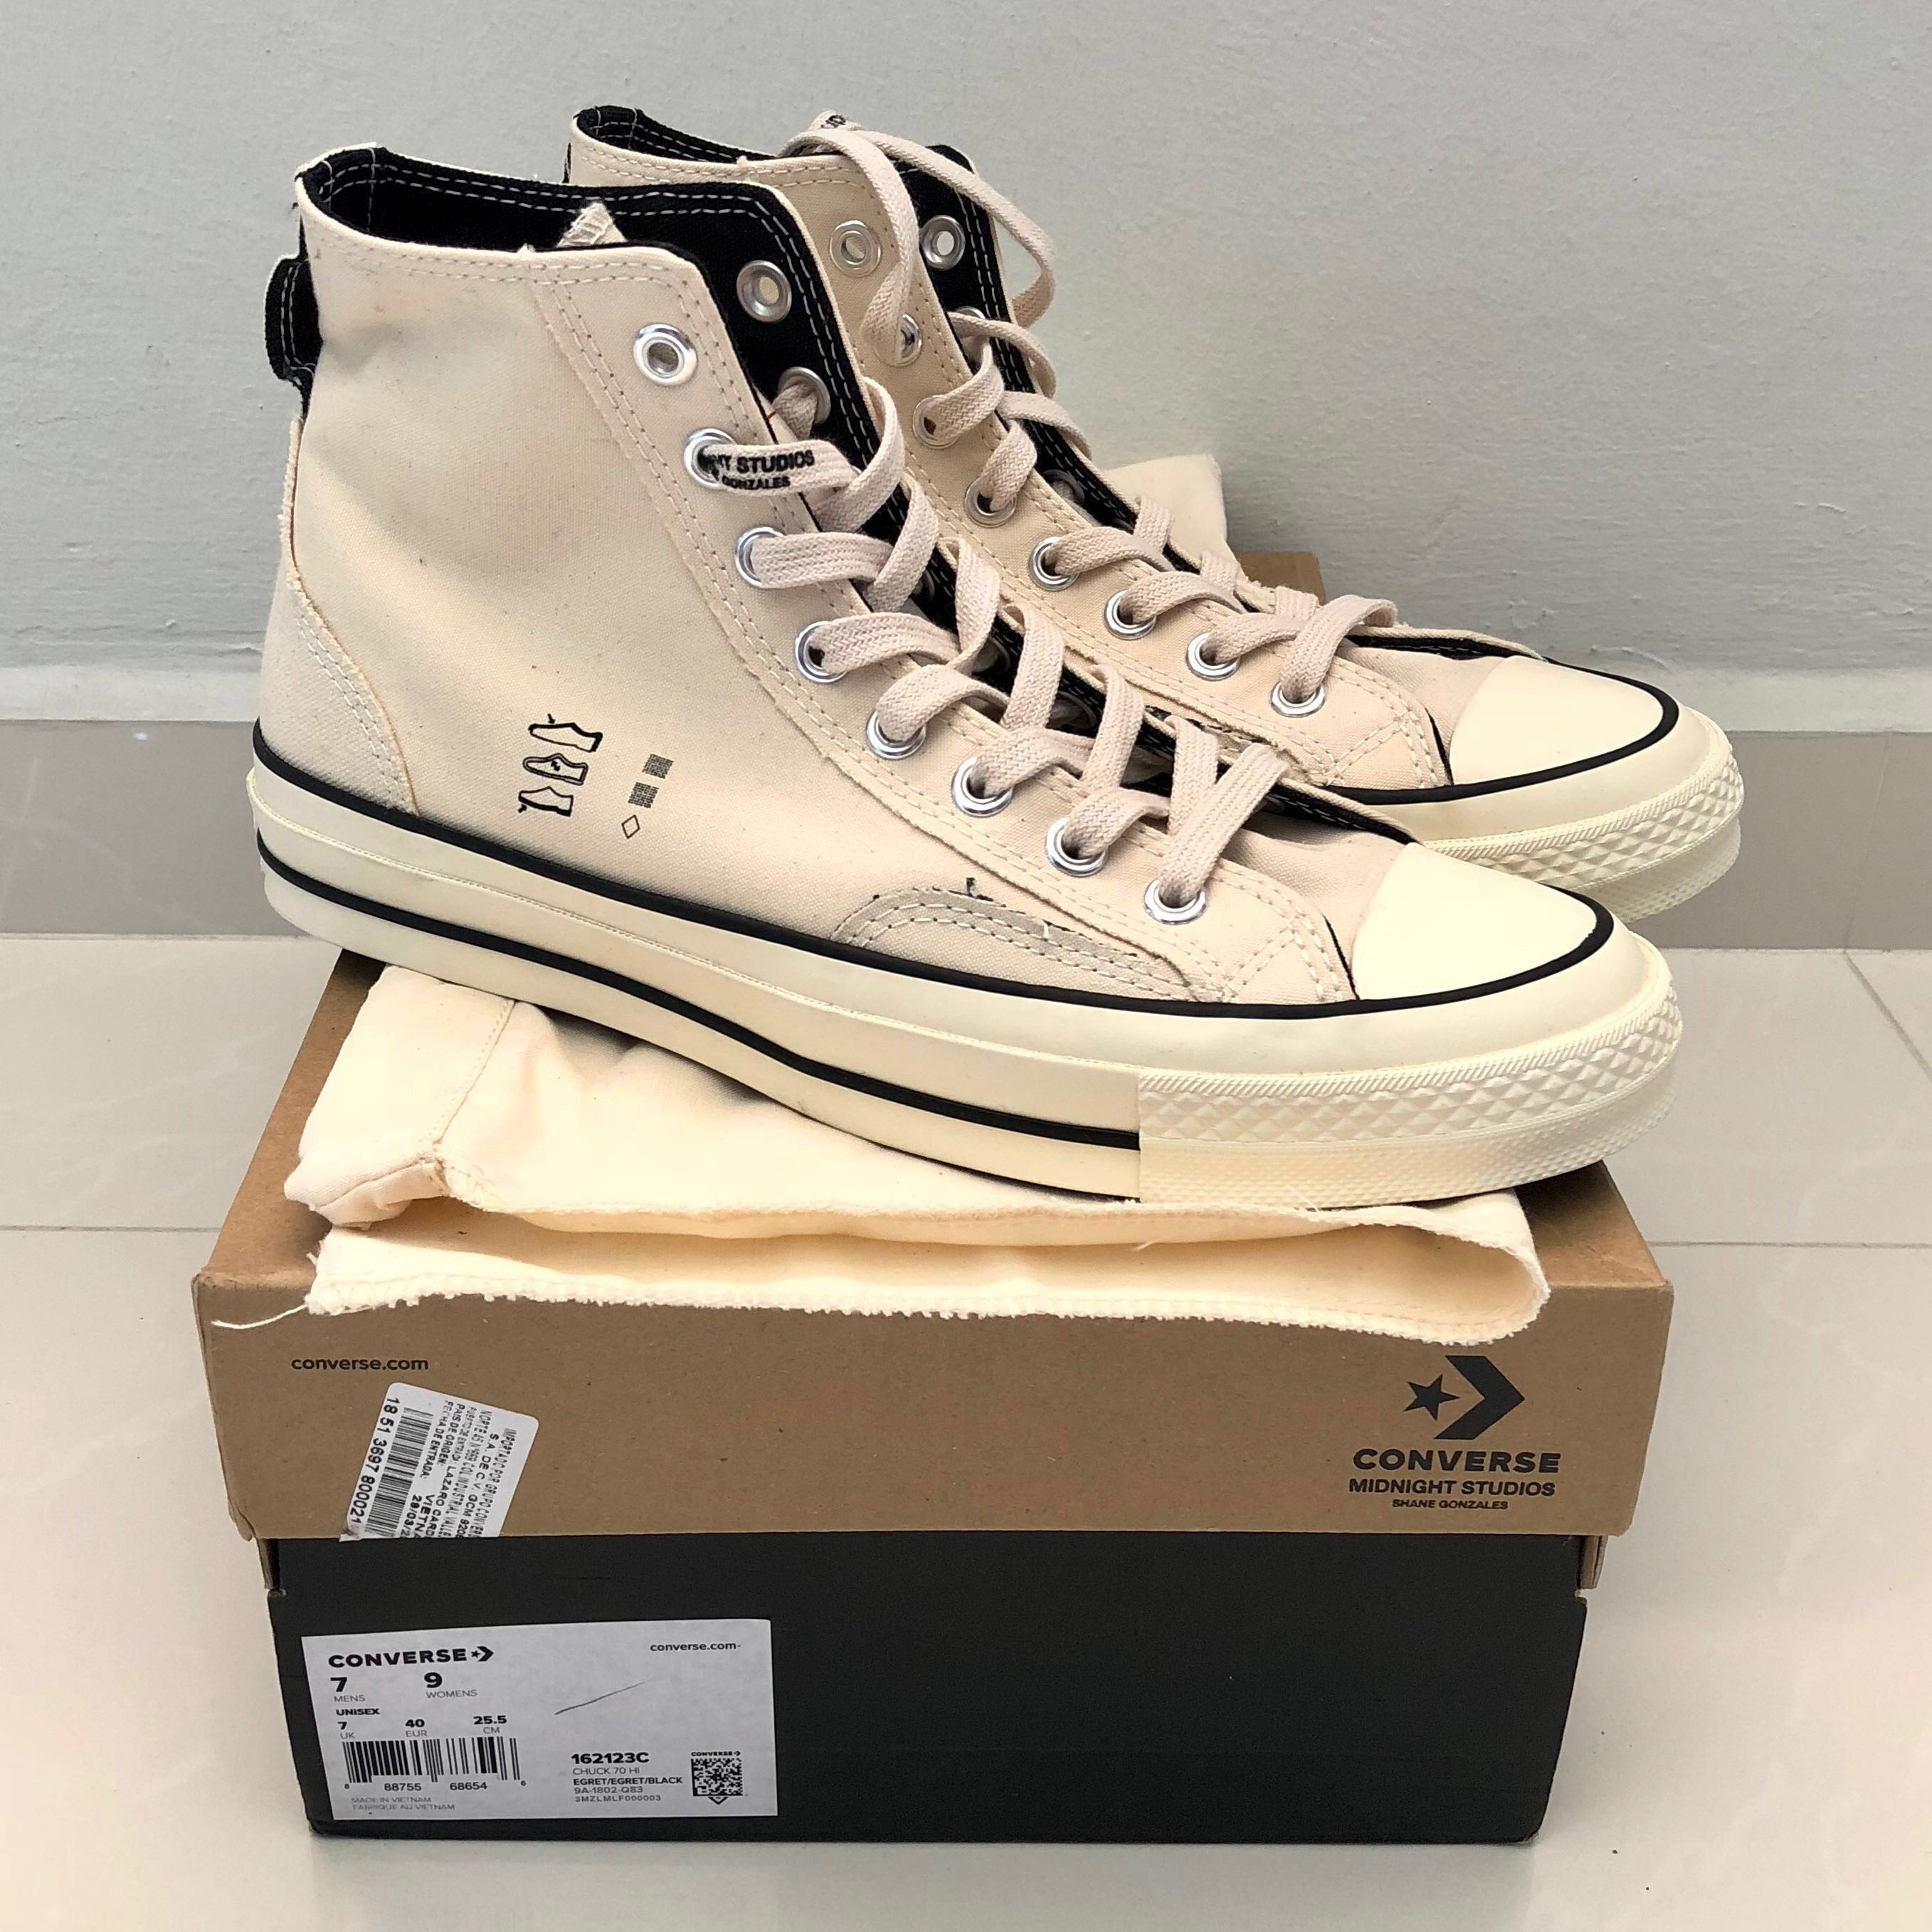 8bd180e303a Midnight Studios x Converse Chuck Taylor All Star 70  Inside Out ...